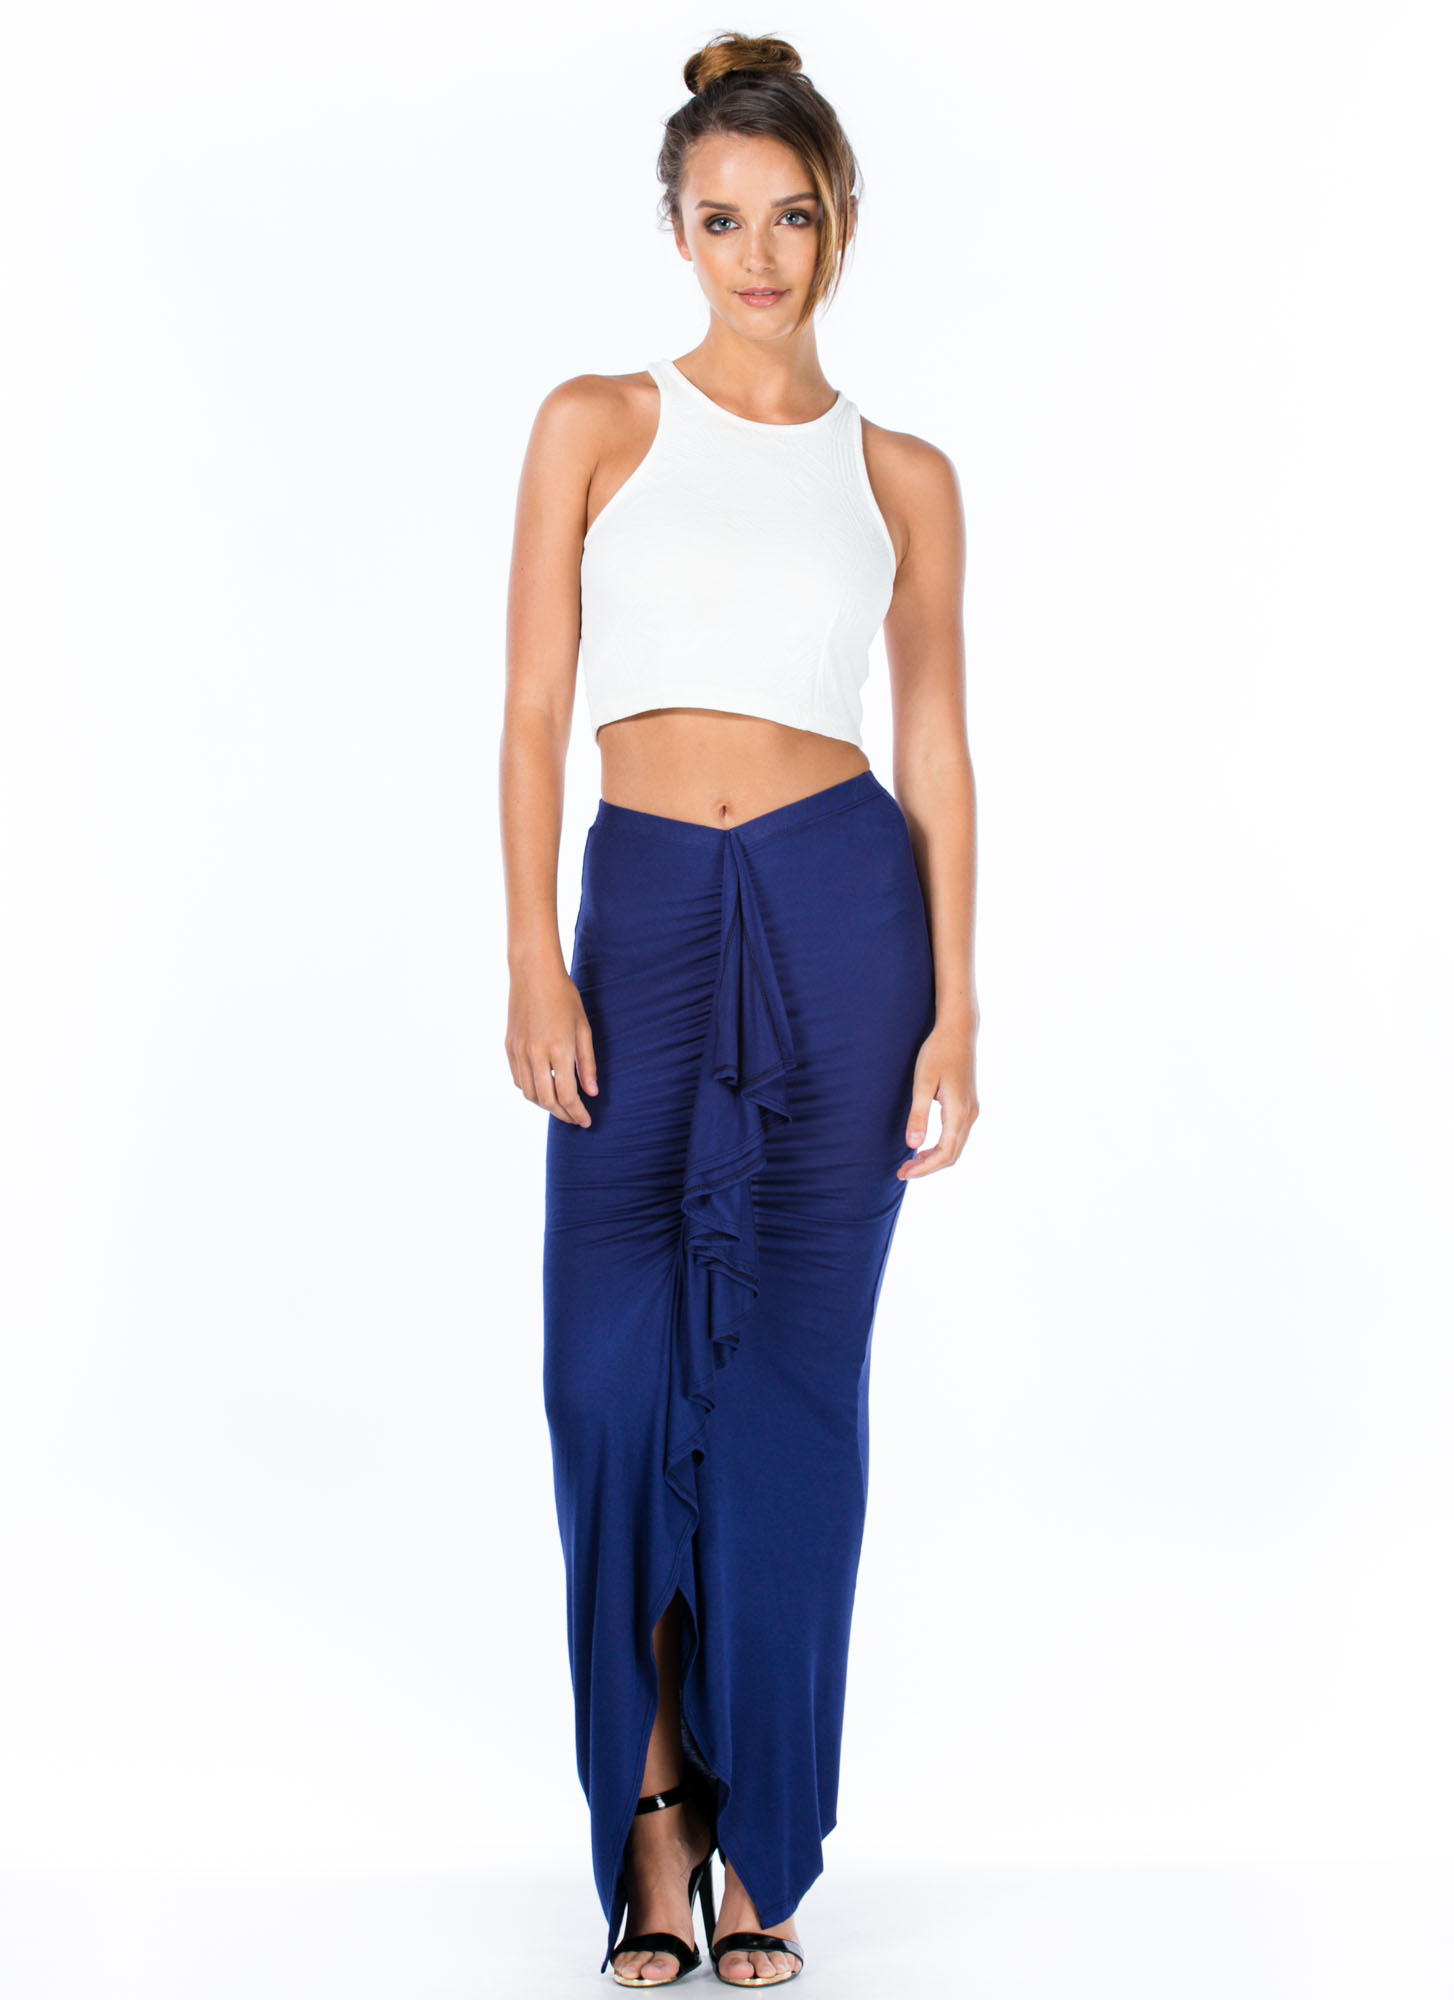 Ruffled Up Maxi Skirt NAVY